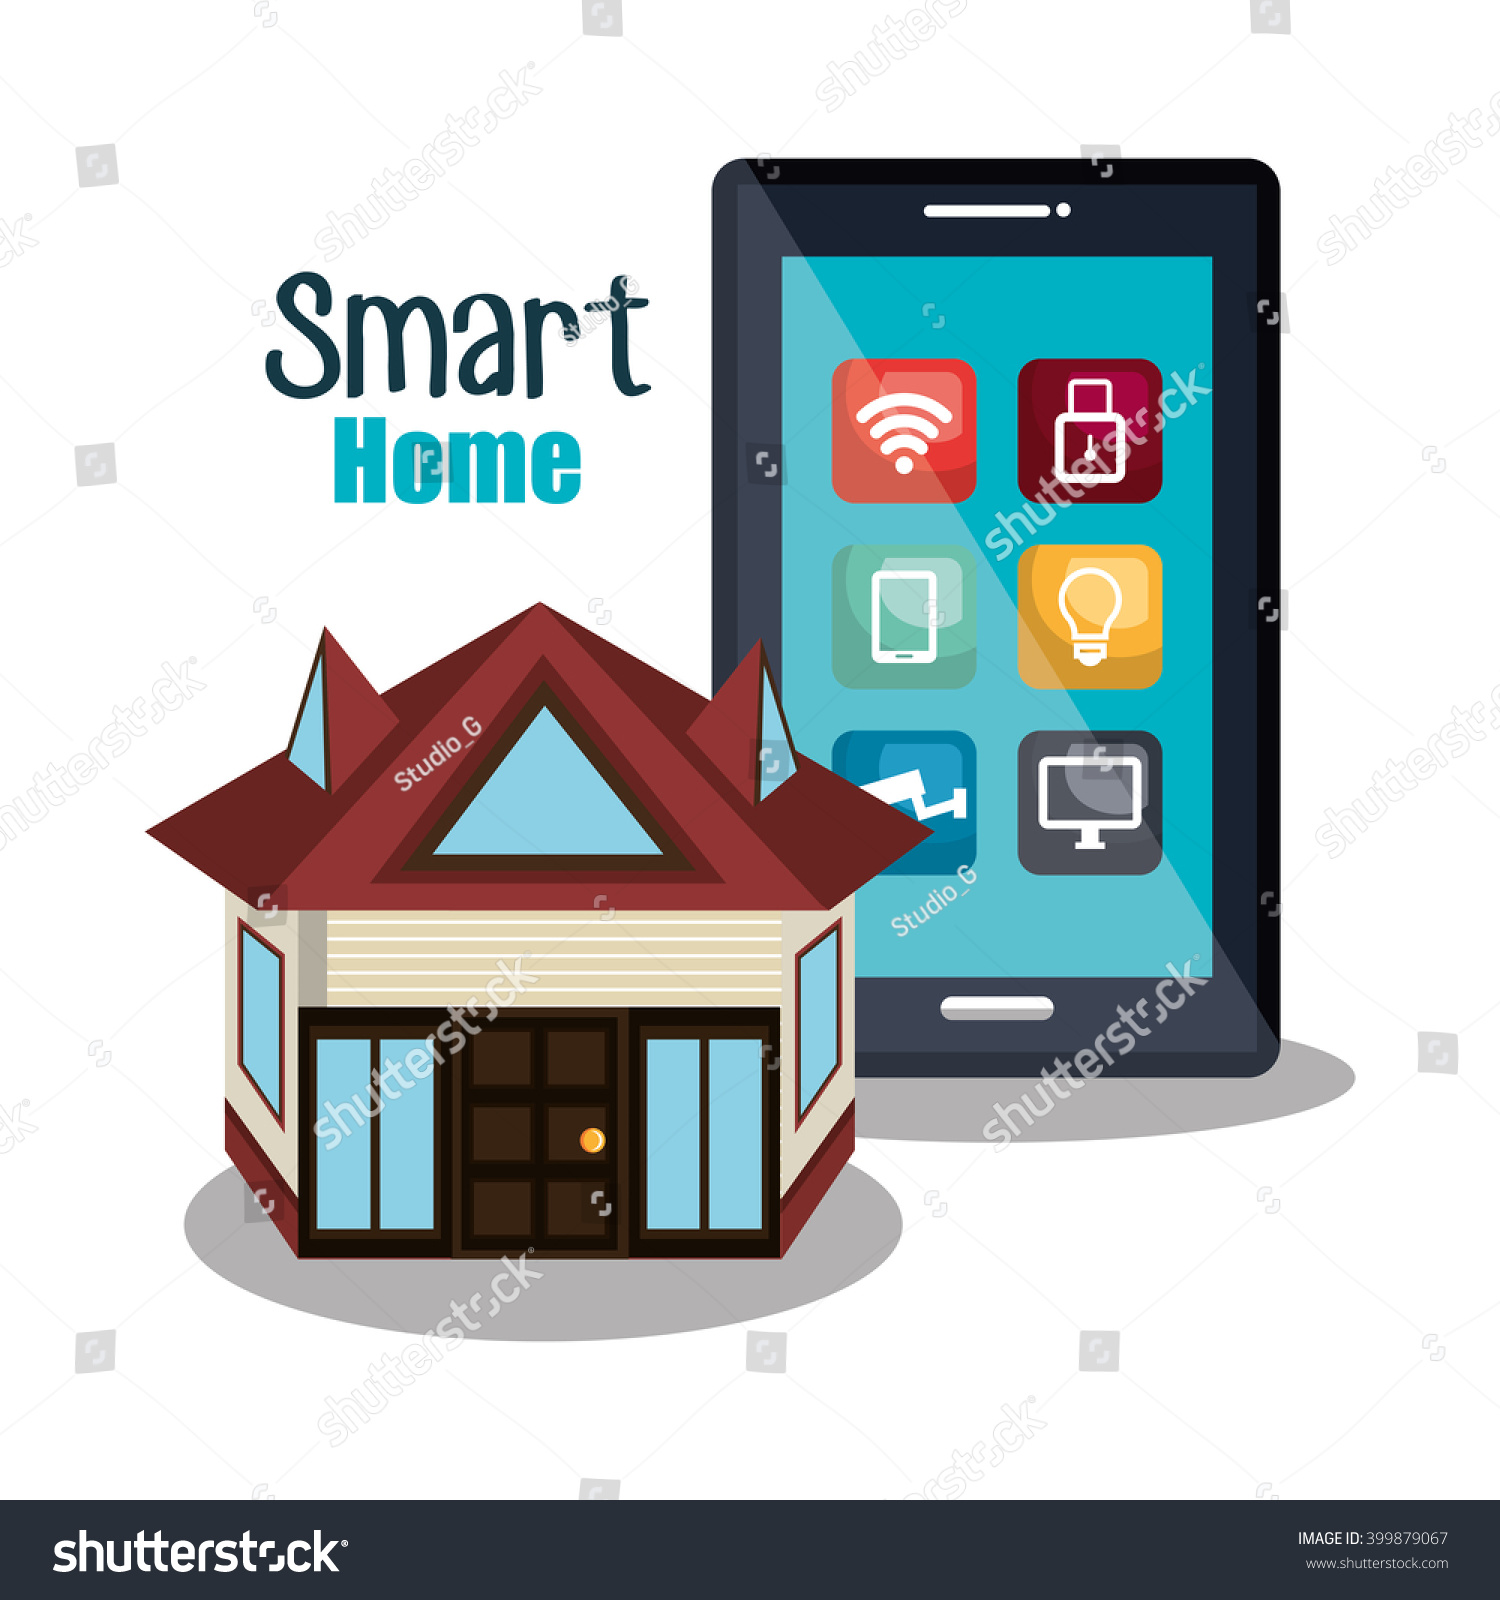 smart home design stock vector 399879067 shutterstock